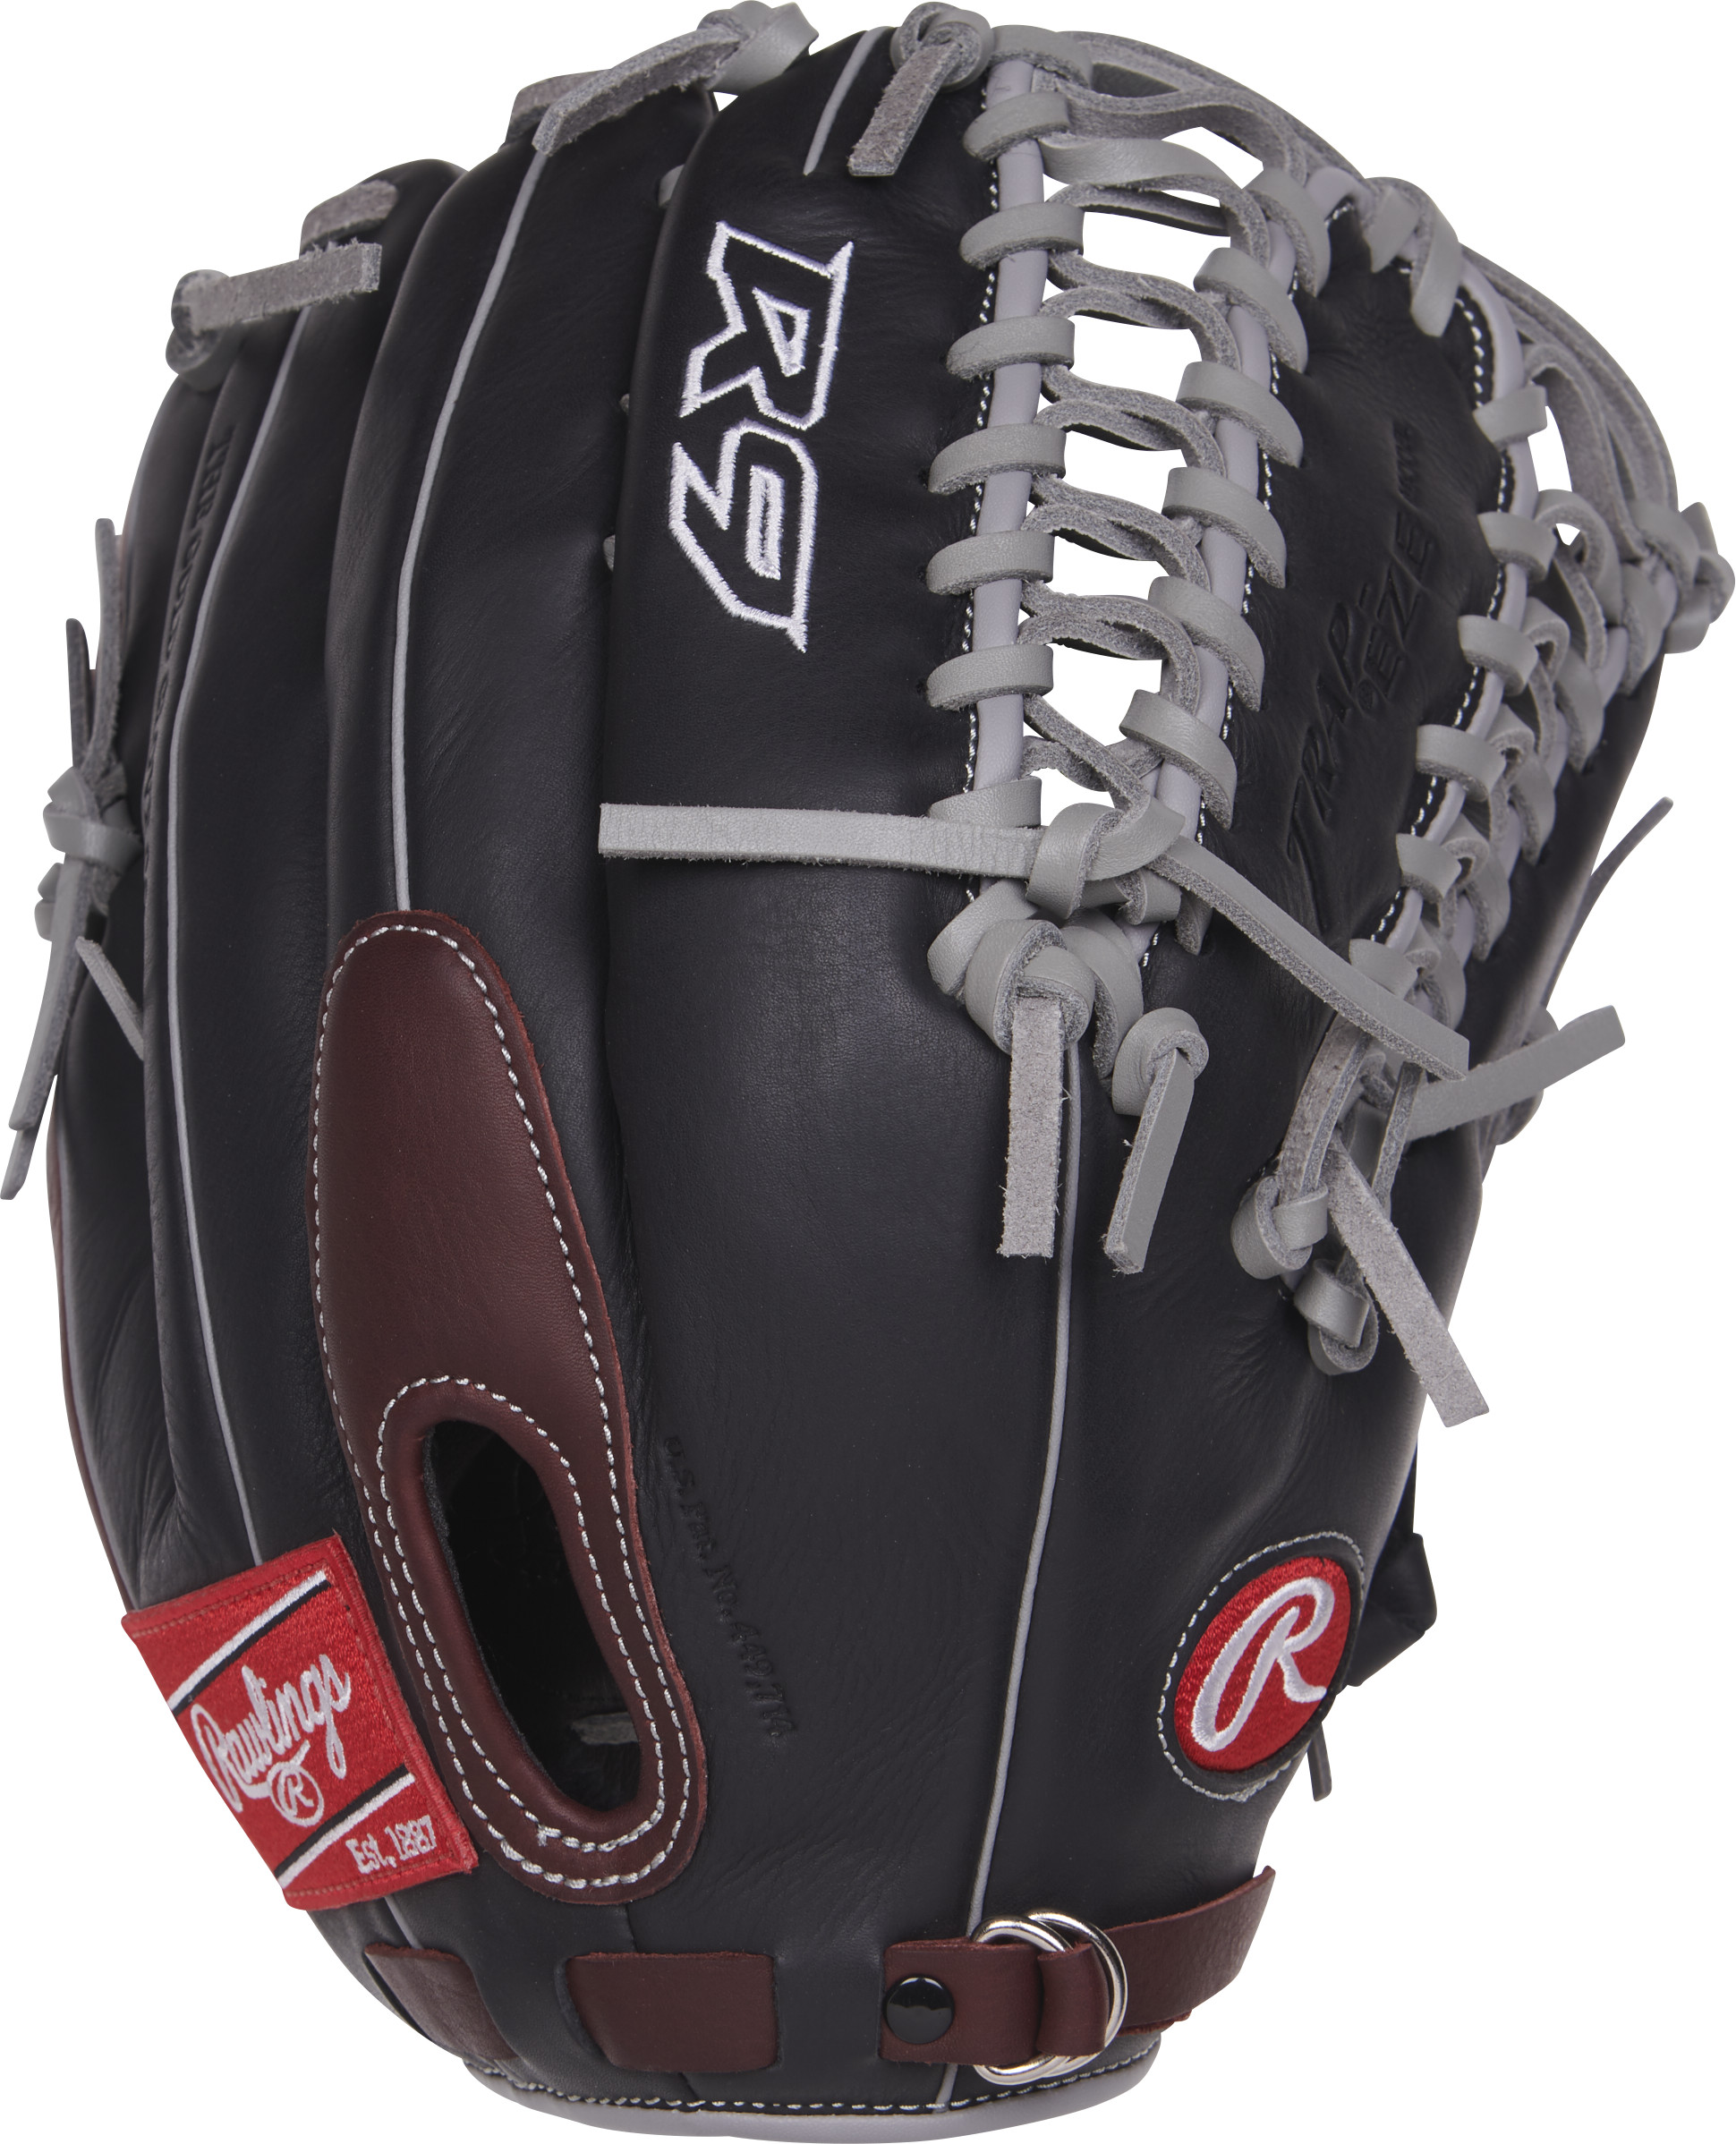 http://www.bestbatdeals.com/images/gloves/rawlings/R96019BSGFS-2.jpg